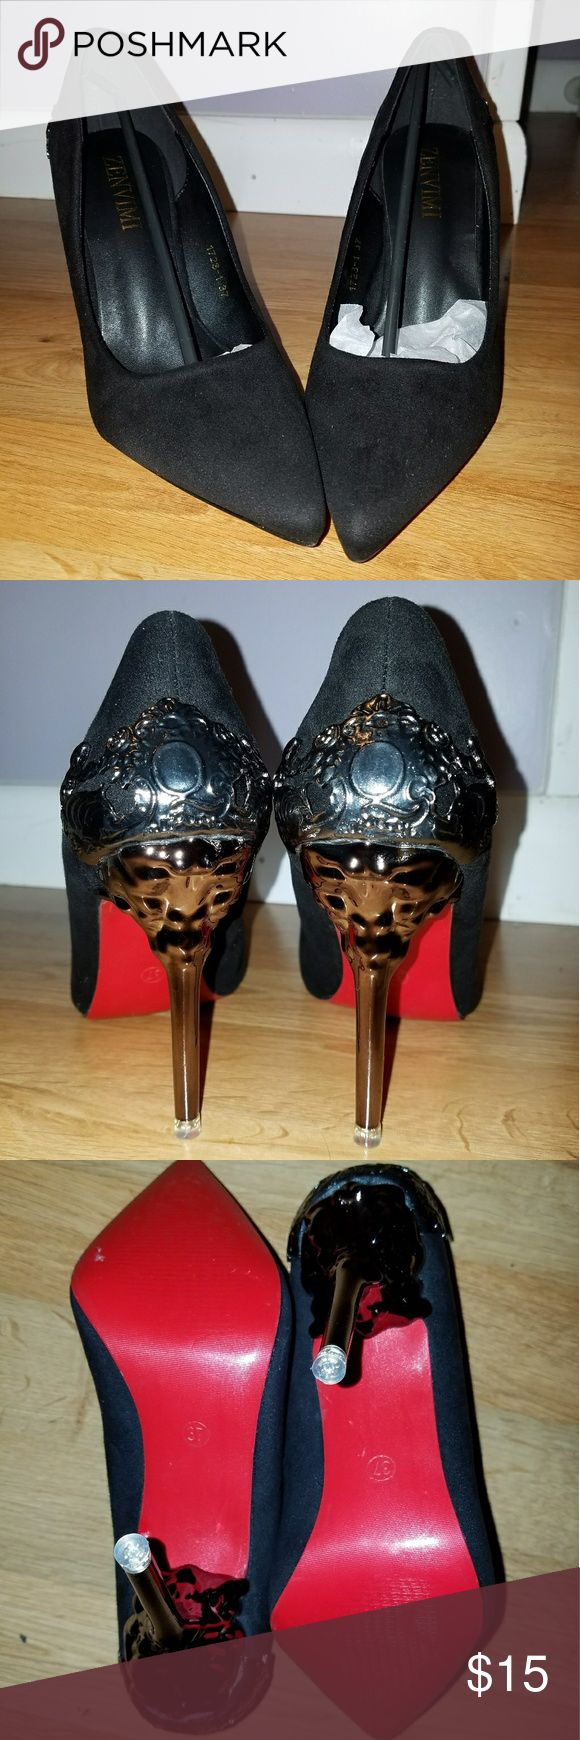 Black High Heels with red bottoms. New, never worn. Beautiful detail on the back of the shoe. Red bottom, 3 inch heel. Still in box. Fancy shoes for a fancy night out!! it's a size 37:China but 6:US Zenvimi Shoes Heels